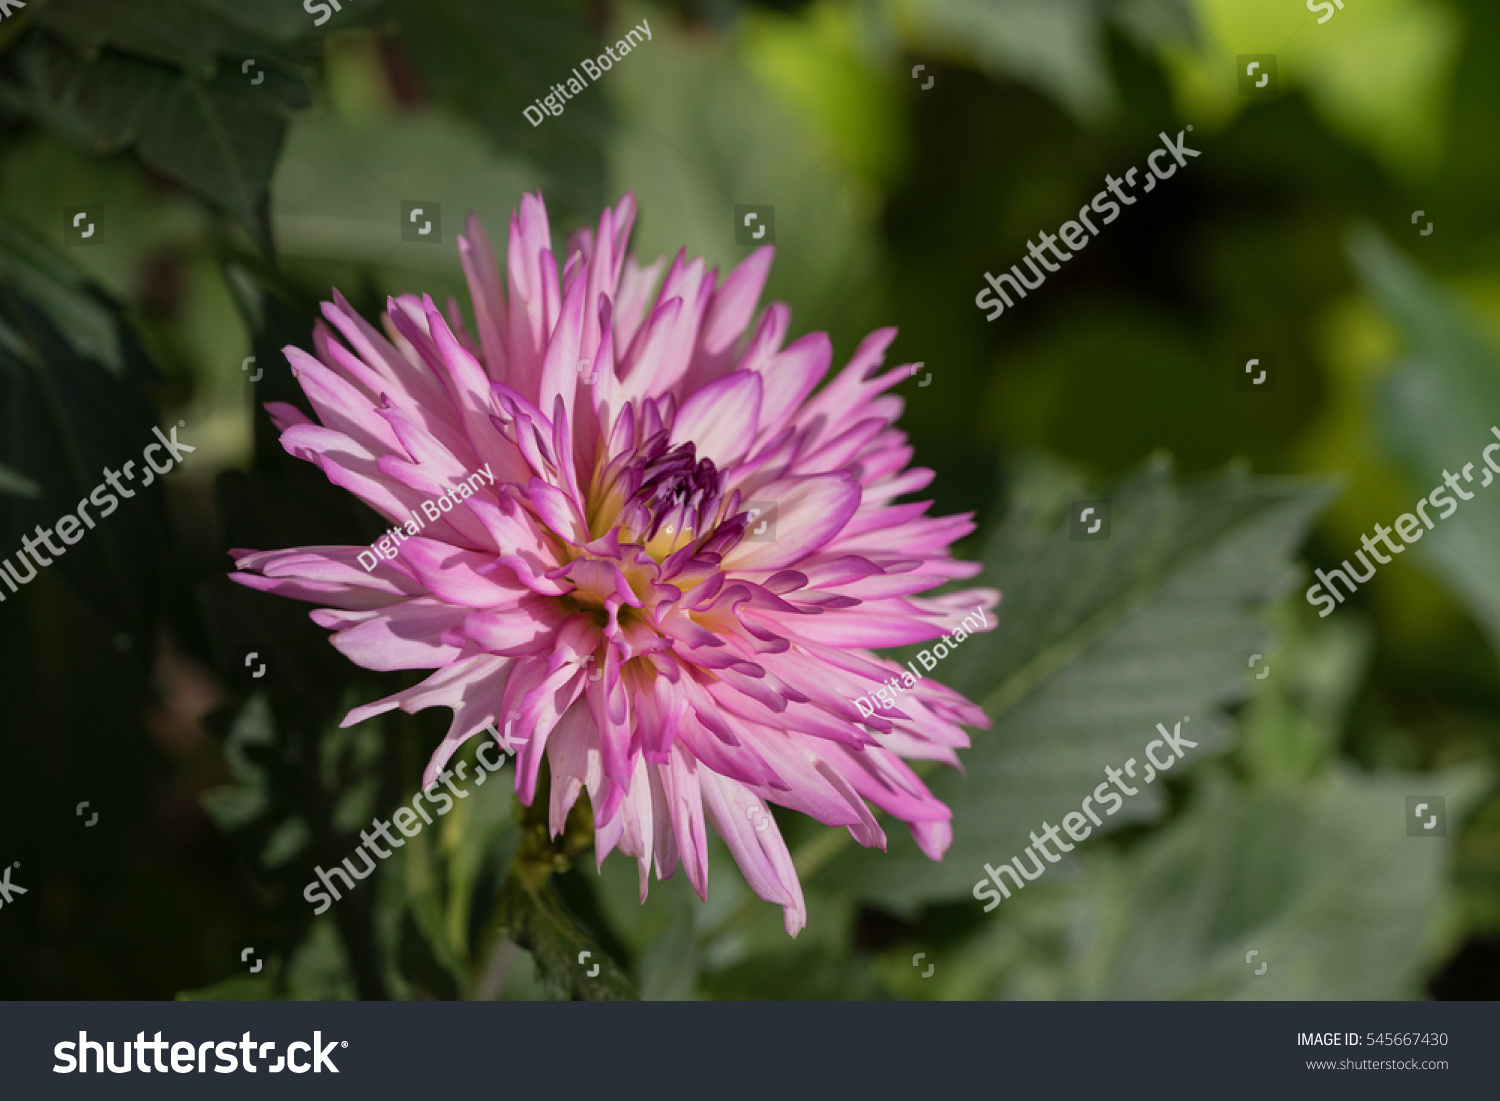 Closeup of pink dahlia flower among green leaves in the sunlight id 545667430 izmirmasajfo